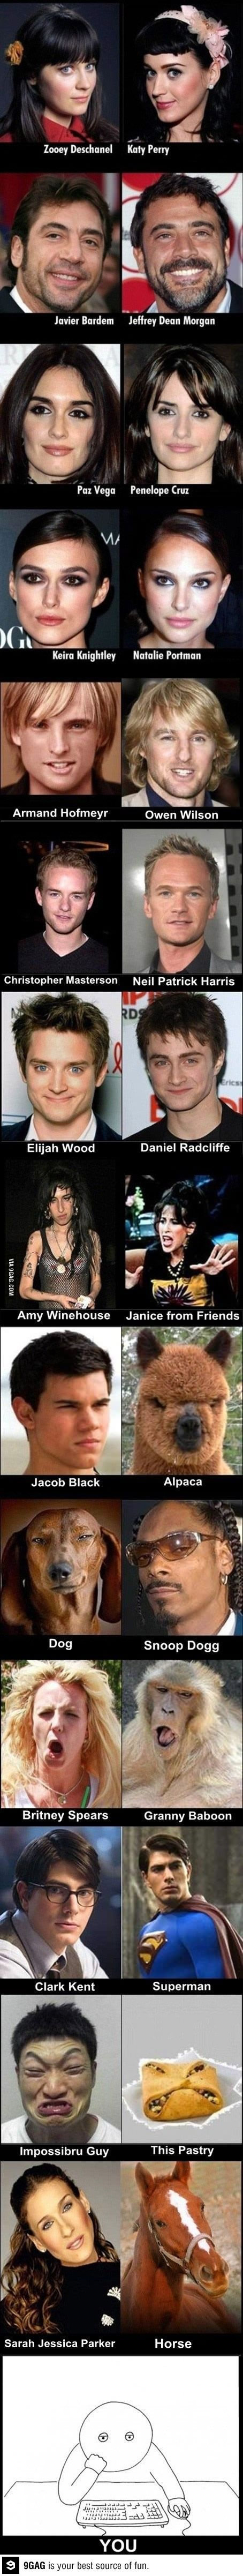 Extreme look alikes. I lost it at Taylor Lautner. And I was just like that LOL